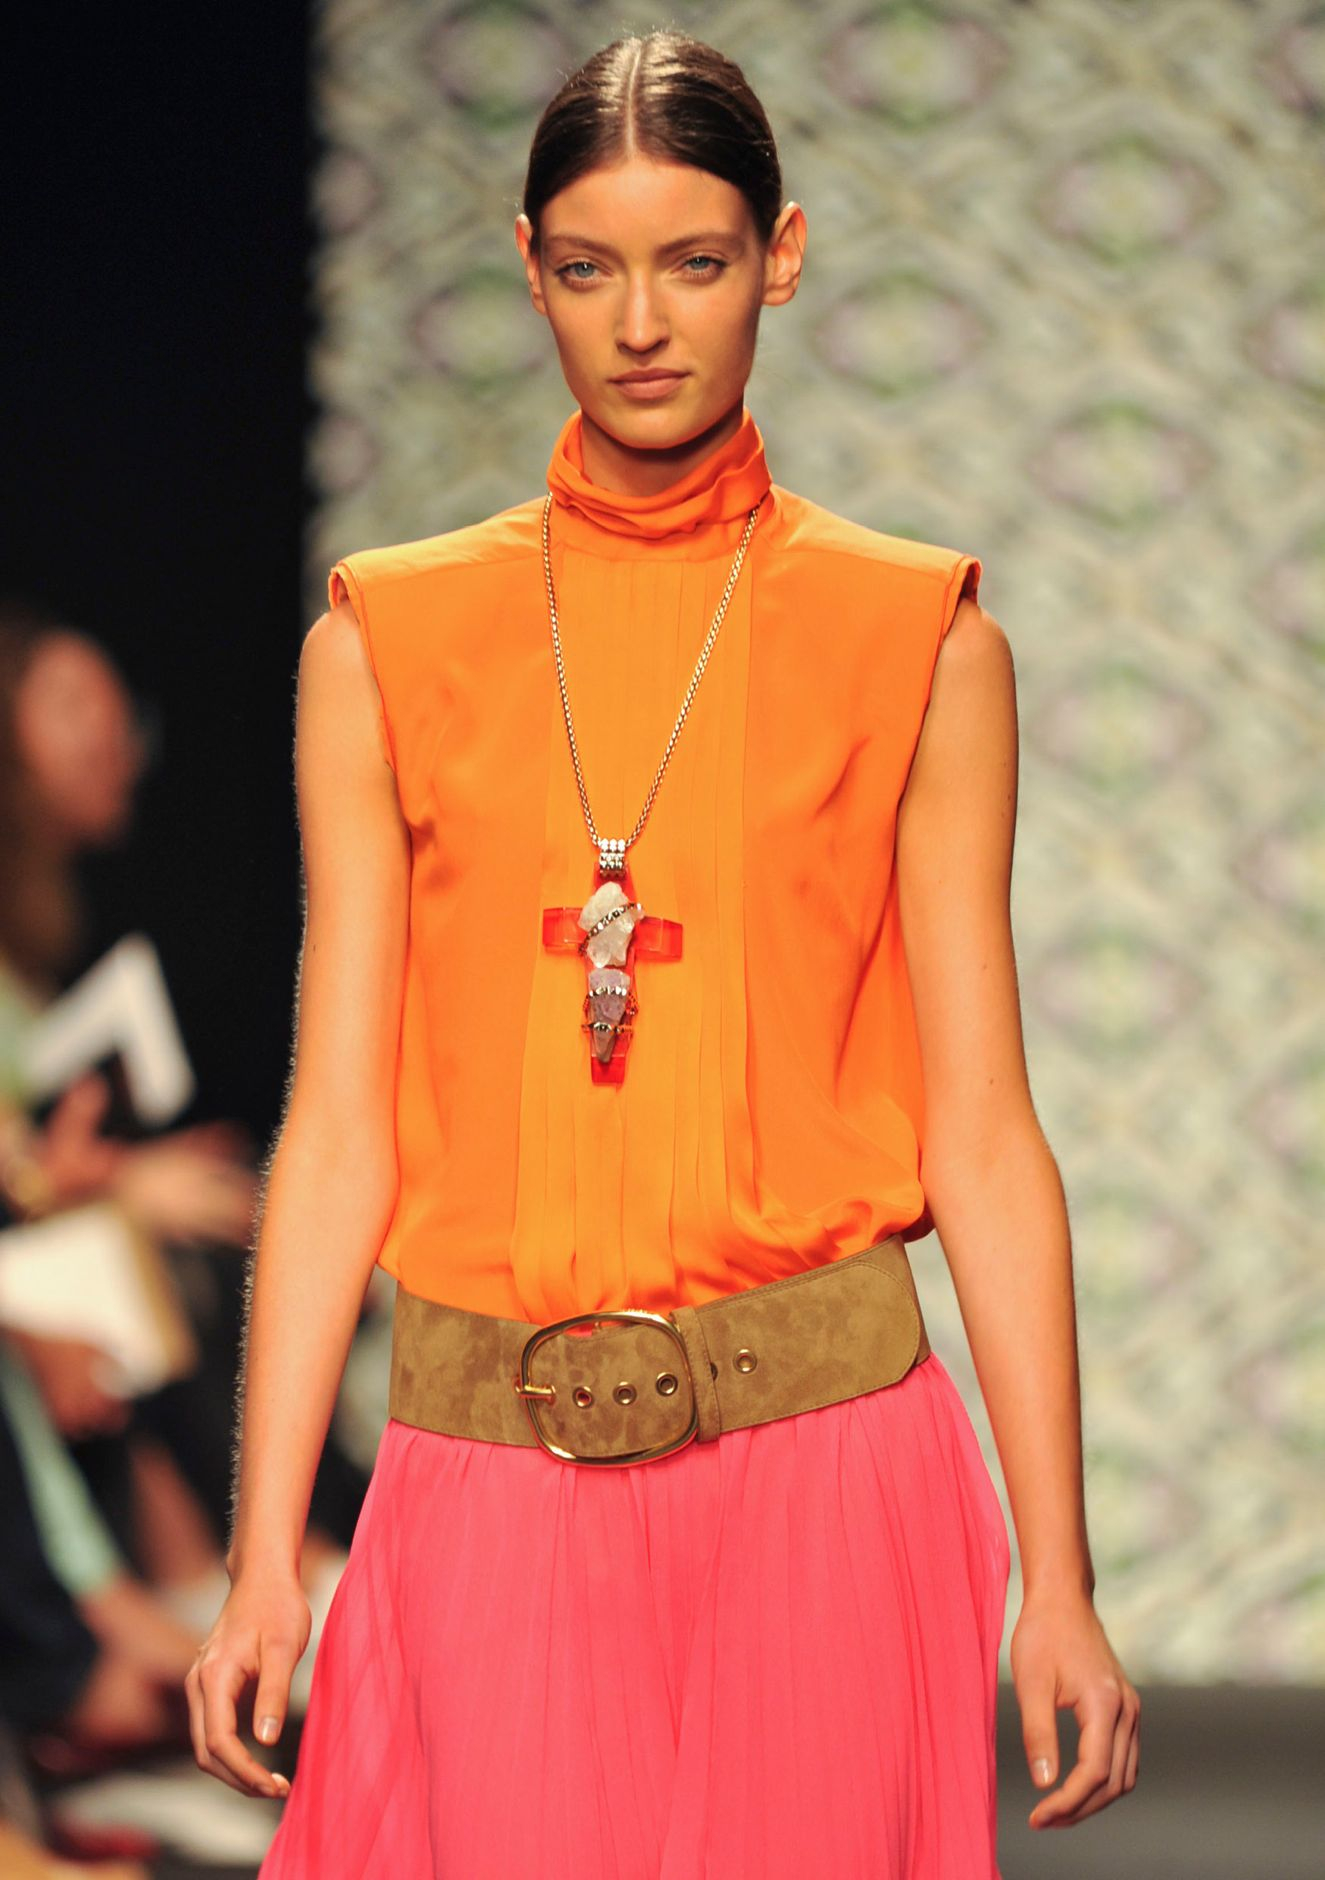 Iceberg Summer Color Fashion Trends 2013